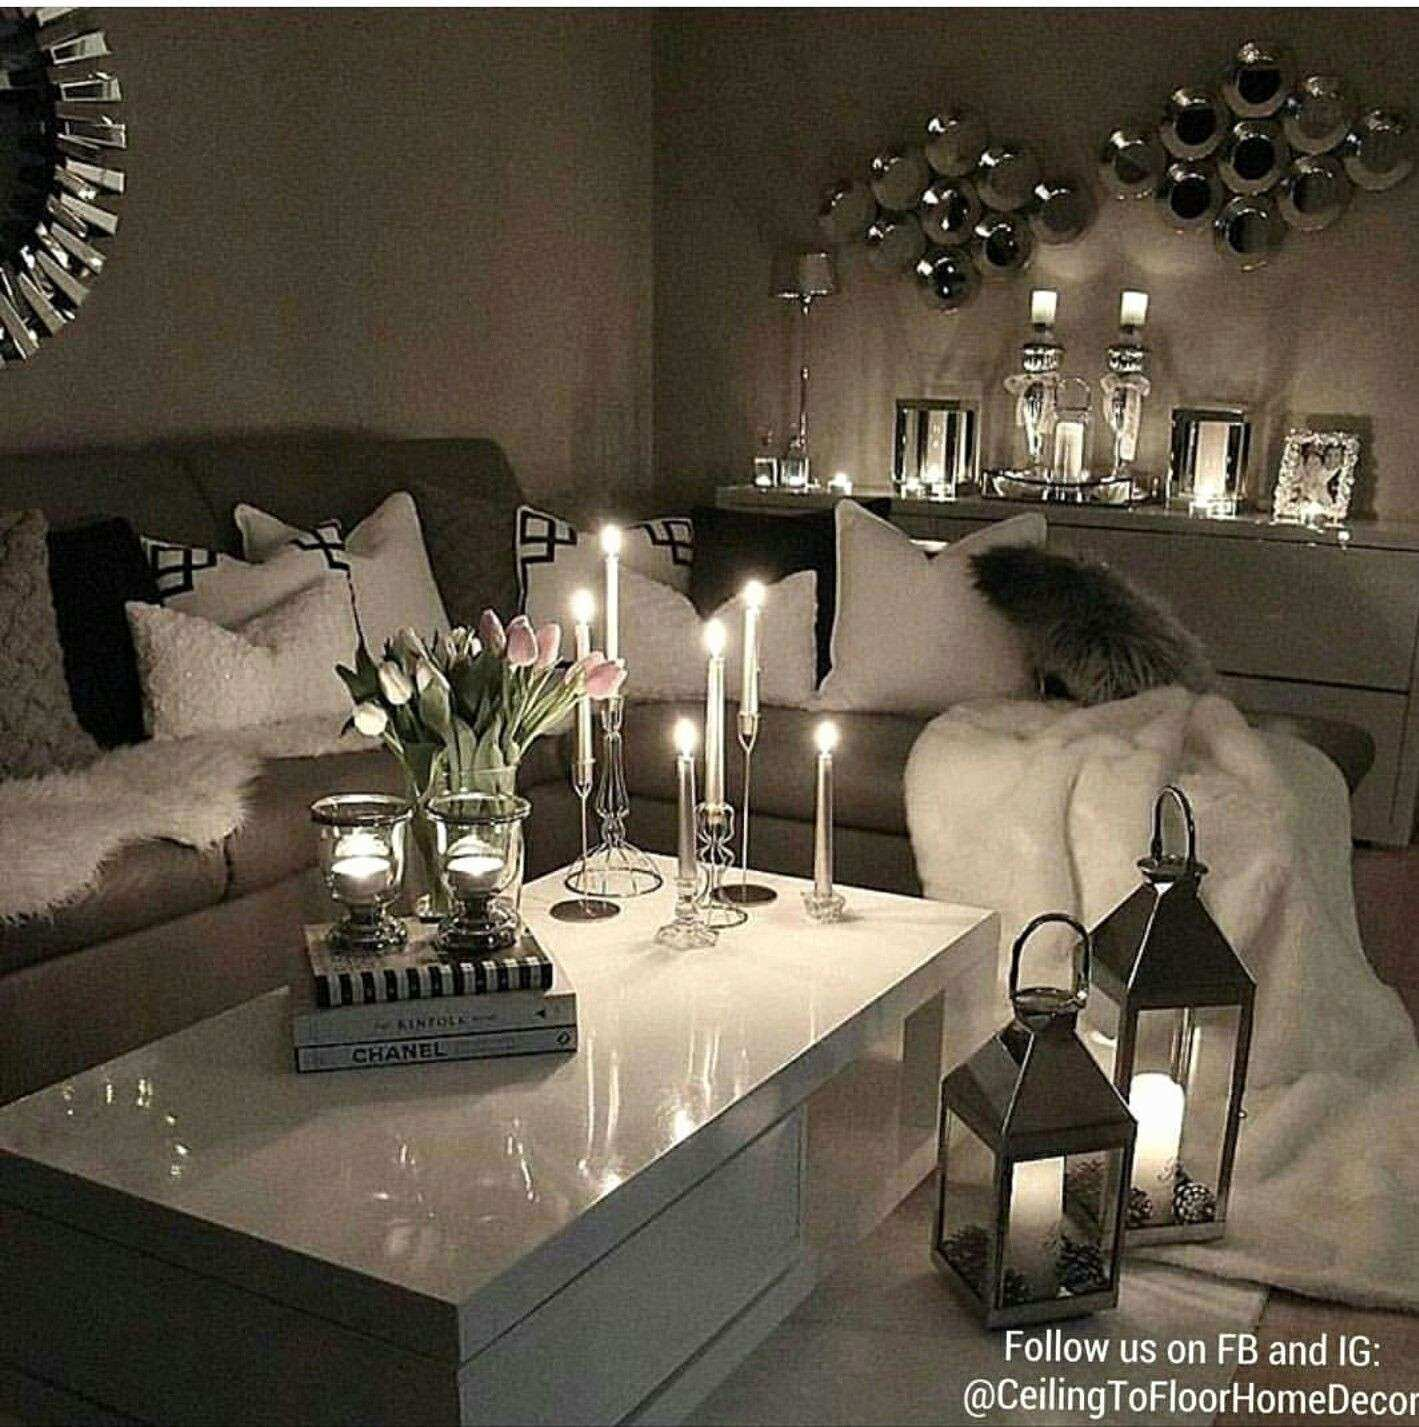 Room Decoration with Flowers Elegant Home Decorating Shows